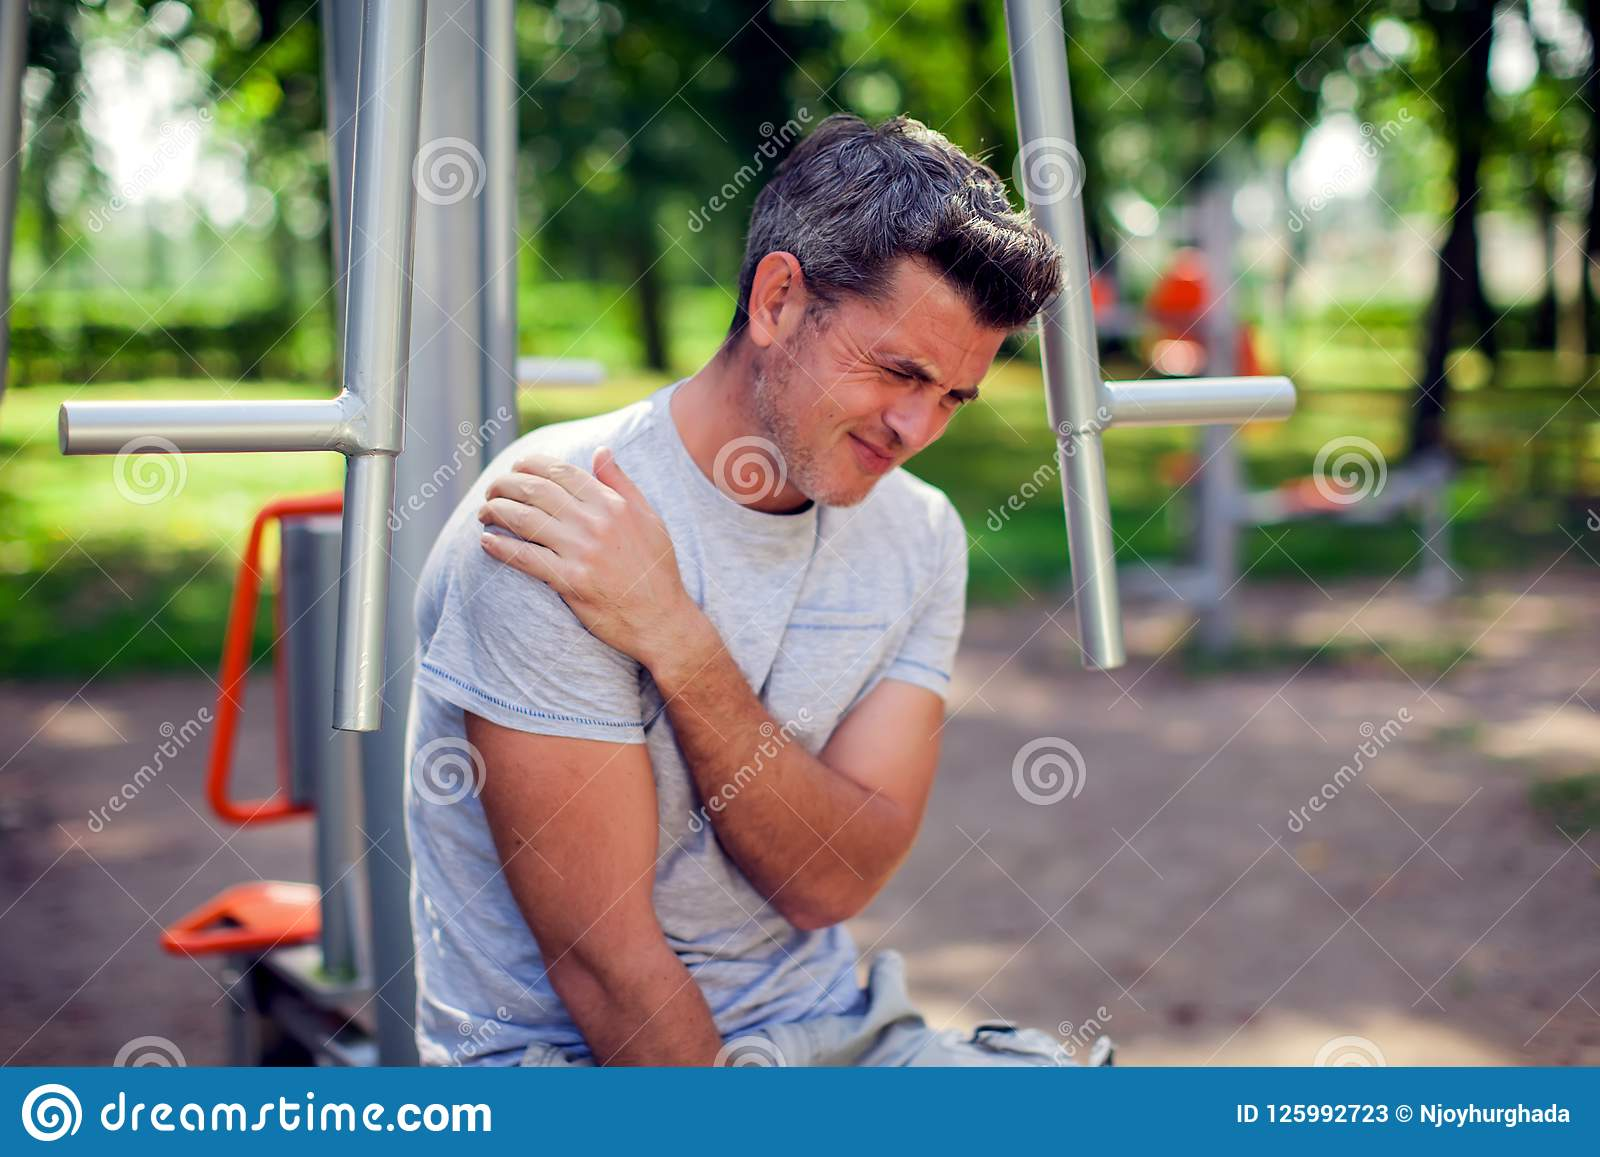 A man feeling pain in his shoulder during sport and workout in t